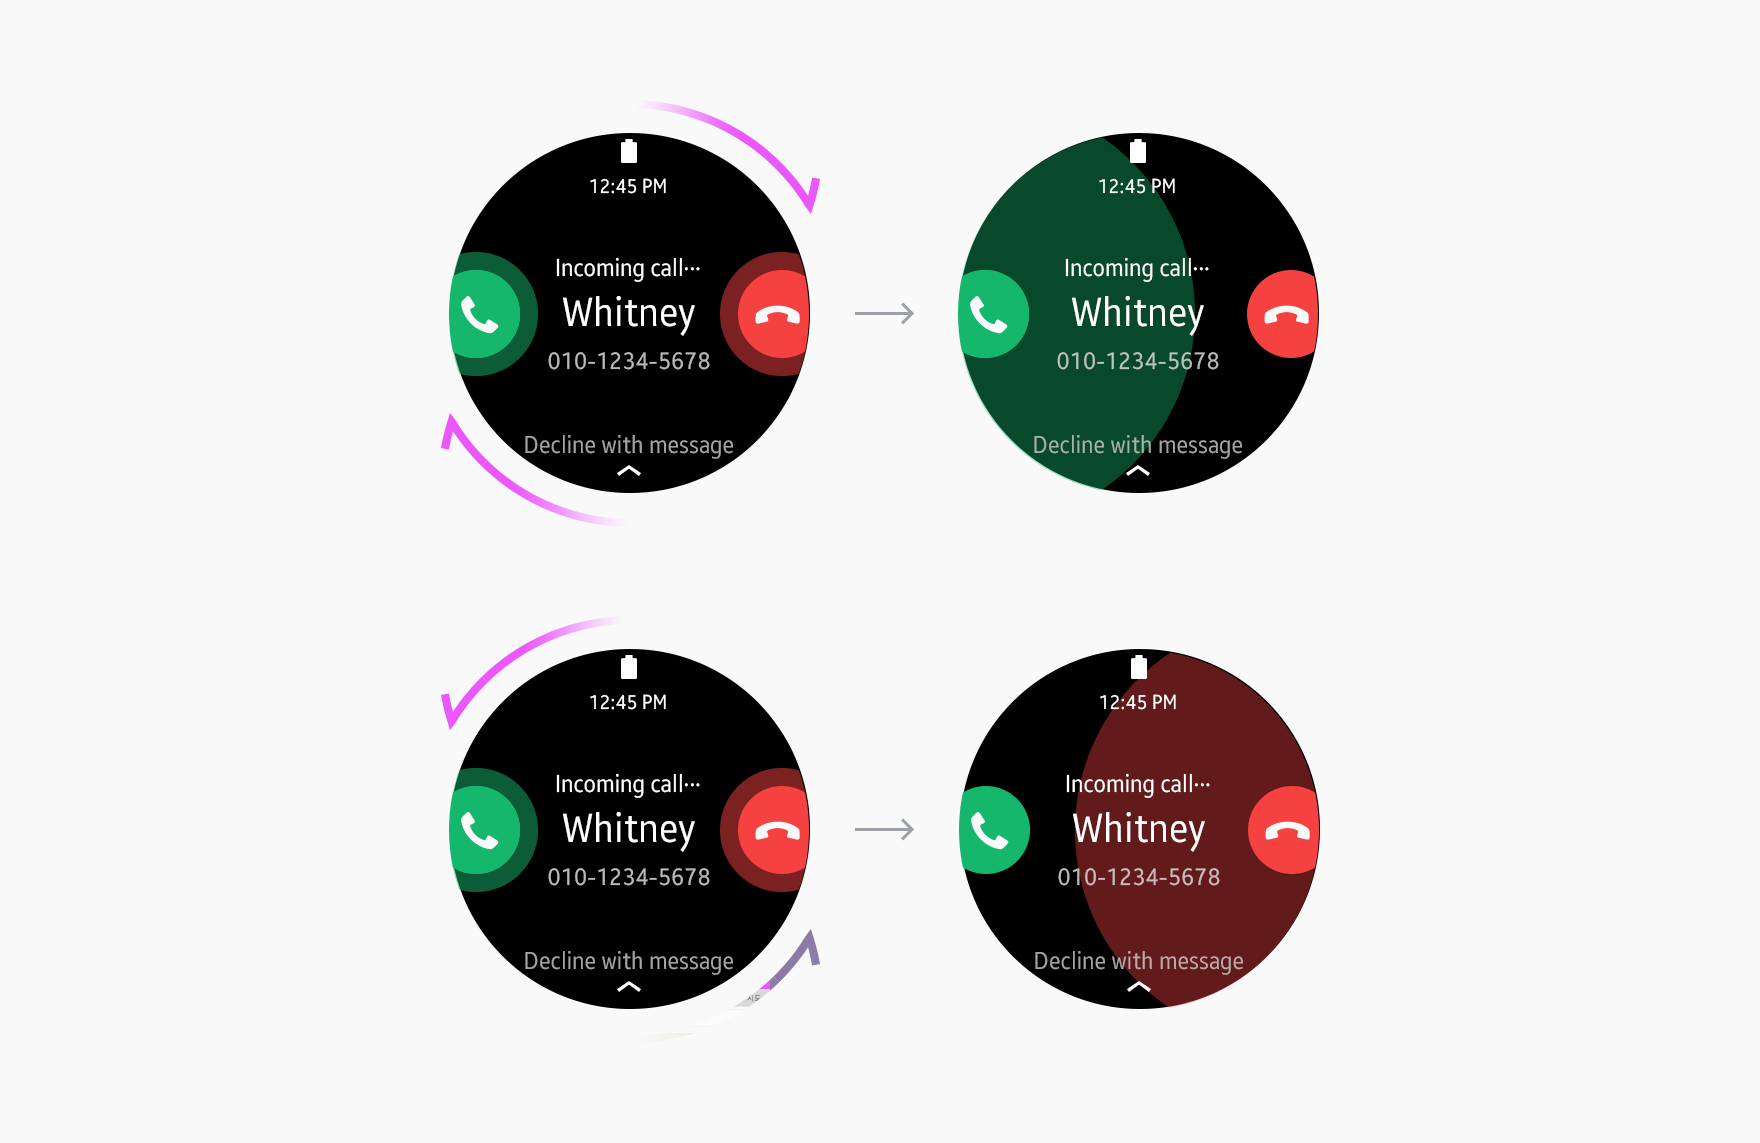 Rotating the bezel quickly selects an option on either side.